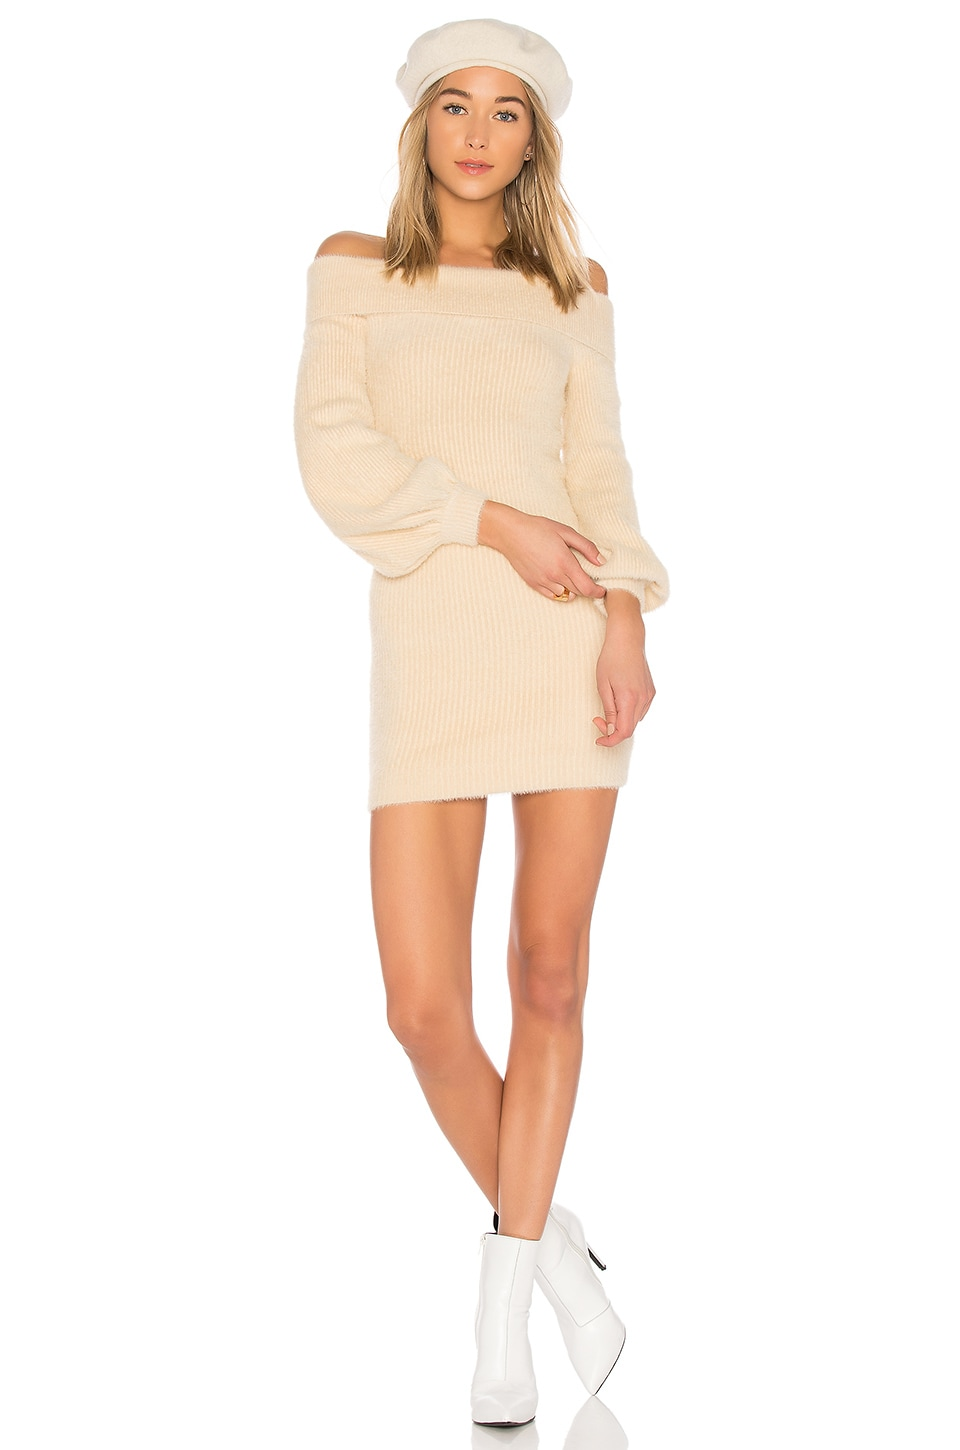 Tularosa Gramercy Dress in Ivory